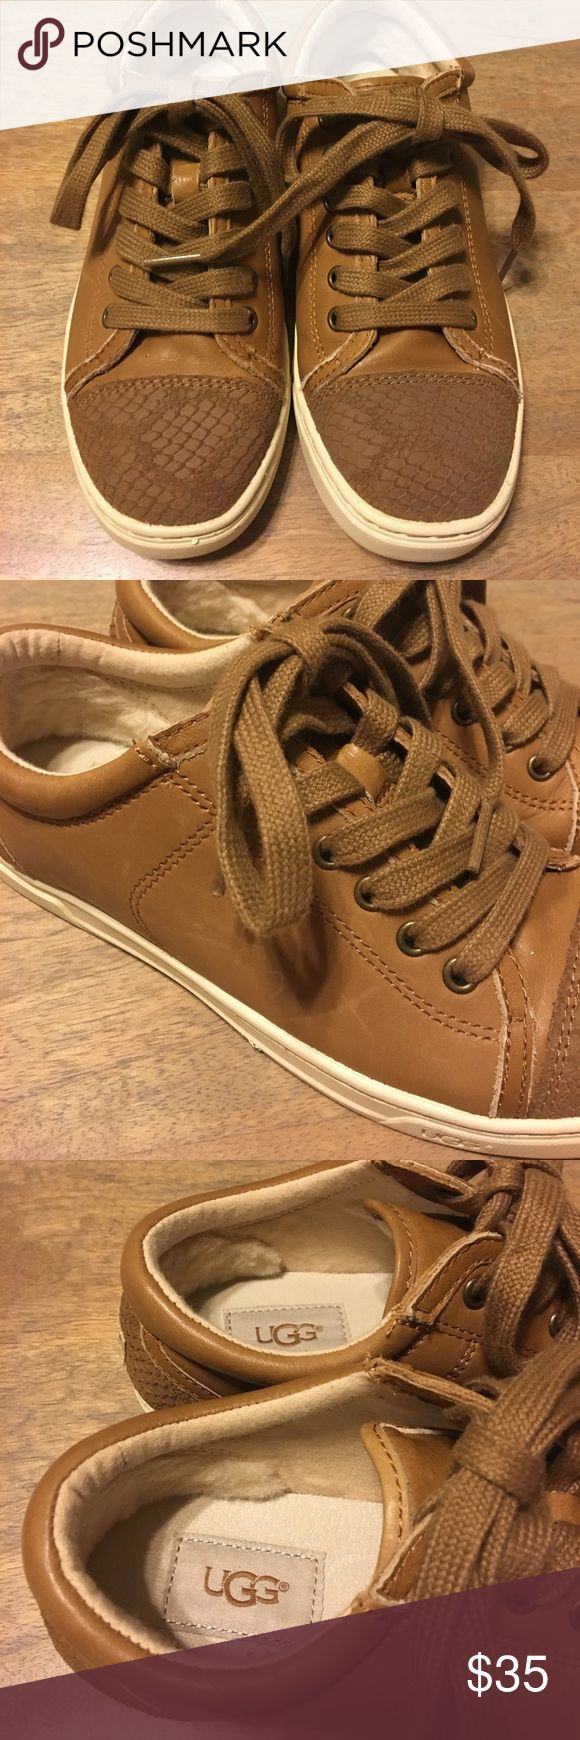 UGG sneaker Worn few times in great condition. Slight scratch side (see picture #2). No box. UGG Shoes Sneakers